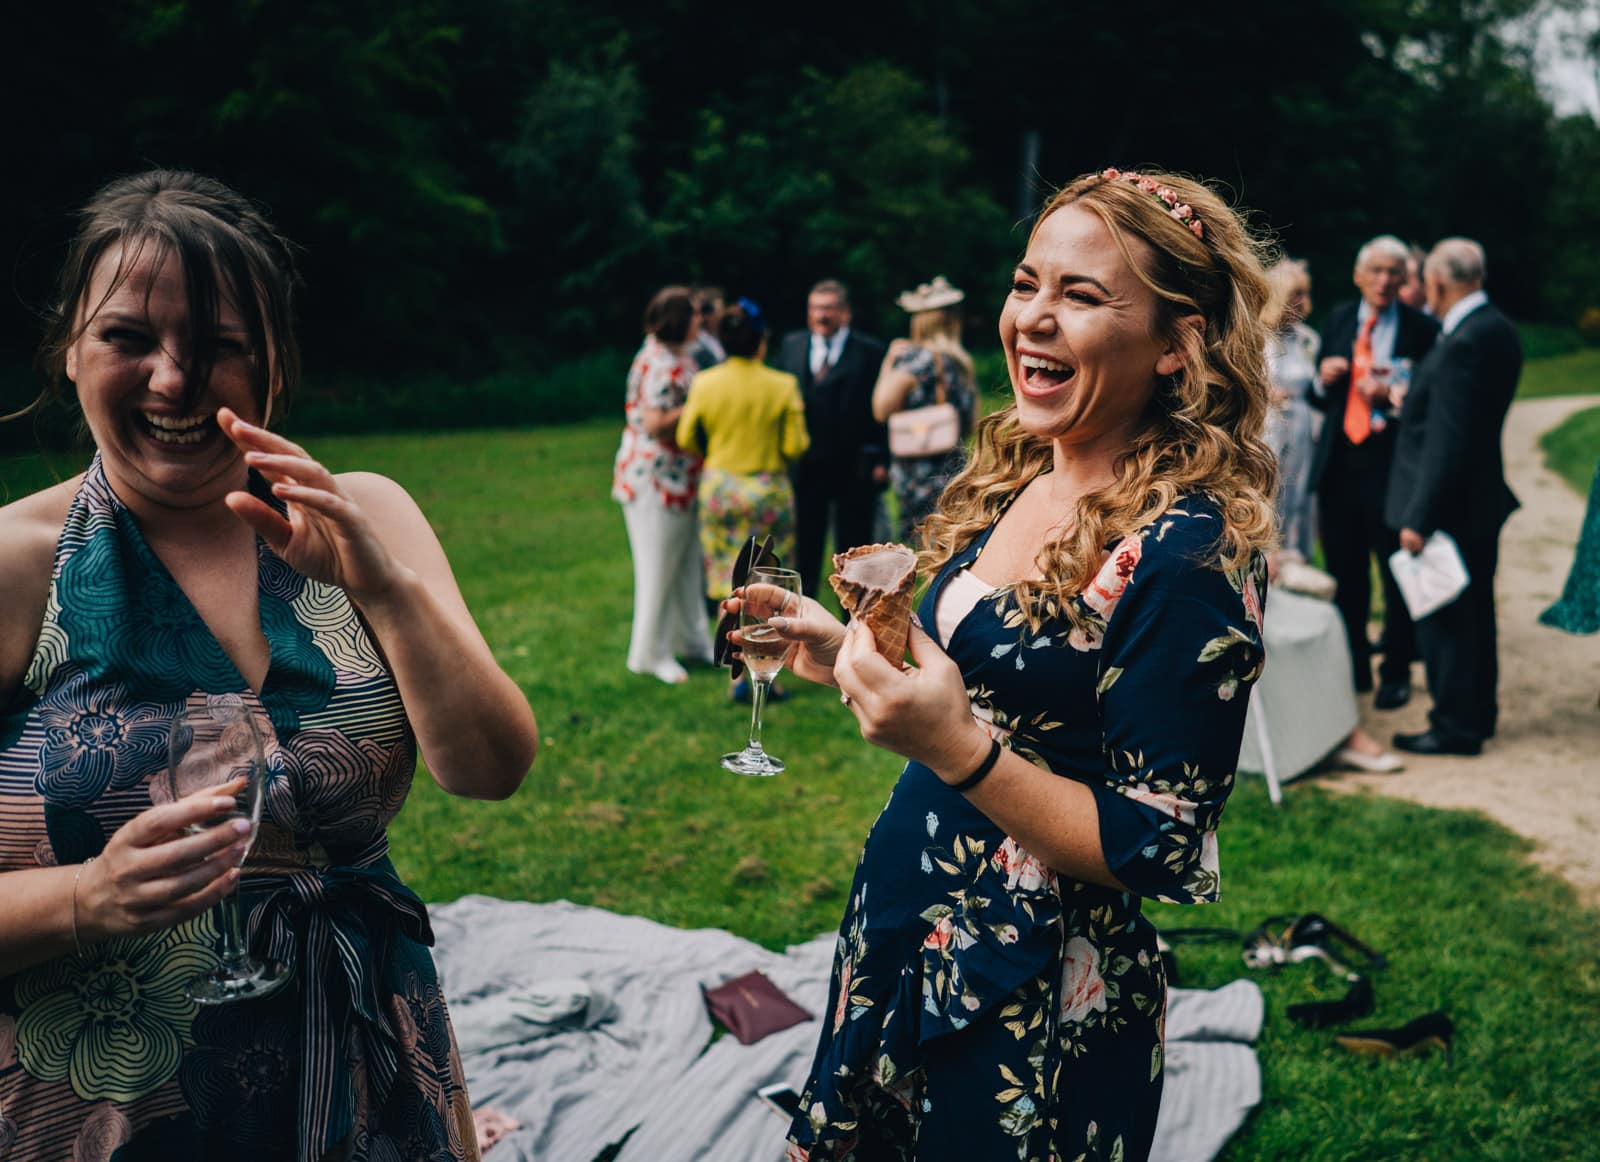 fun and relaxed wedding photography at Quarry Bank Mill